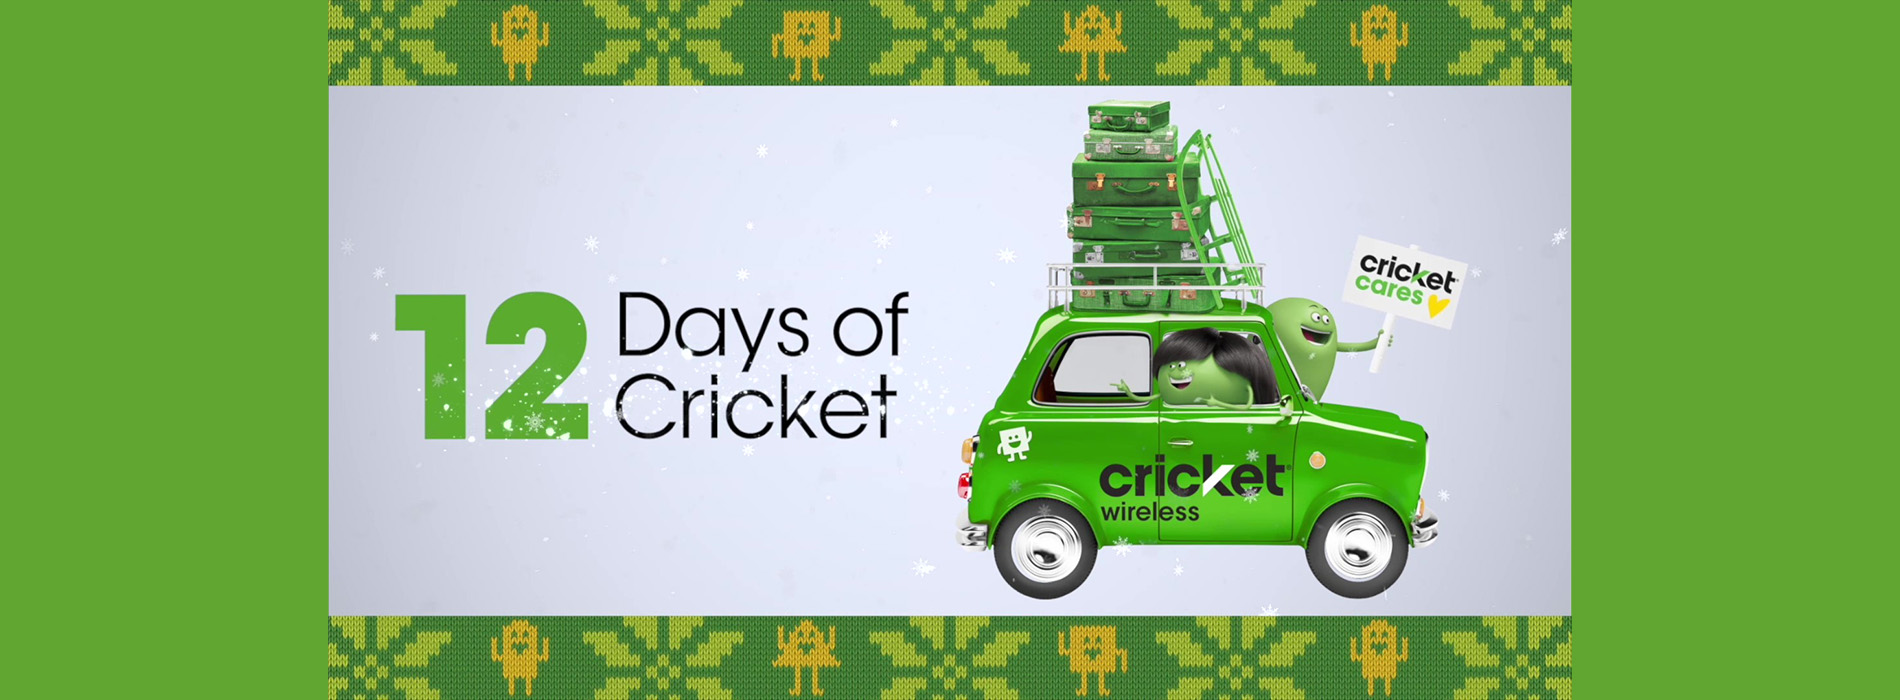 Throughout 12 Days of Cricket, nearly 1,000 people shared stories of perseverance on behalf of friends and family members. After careful review, 12 families in 12 cities were selected to win based on their inspirational stories.